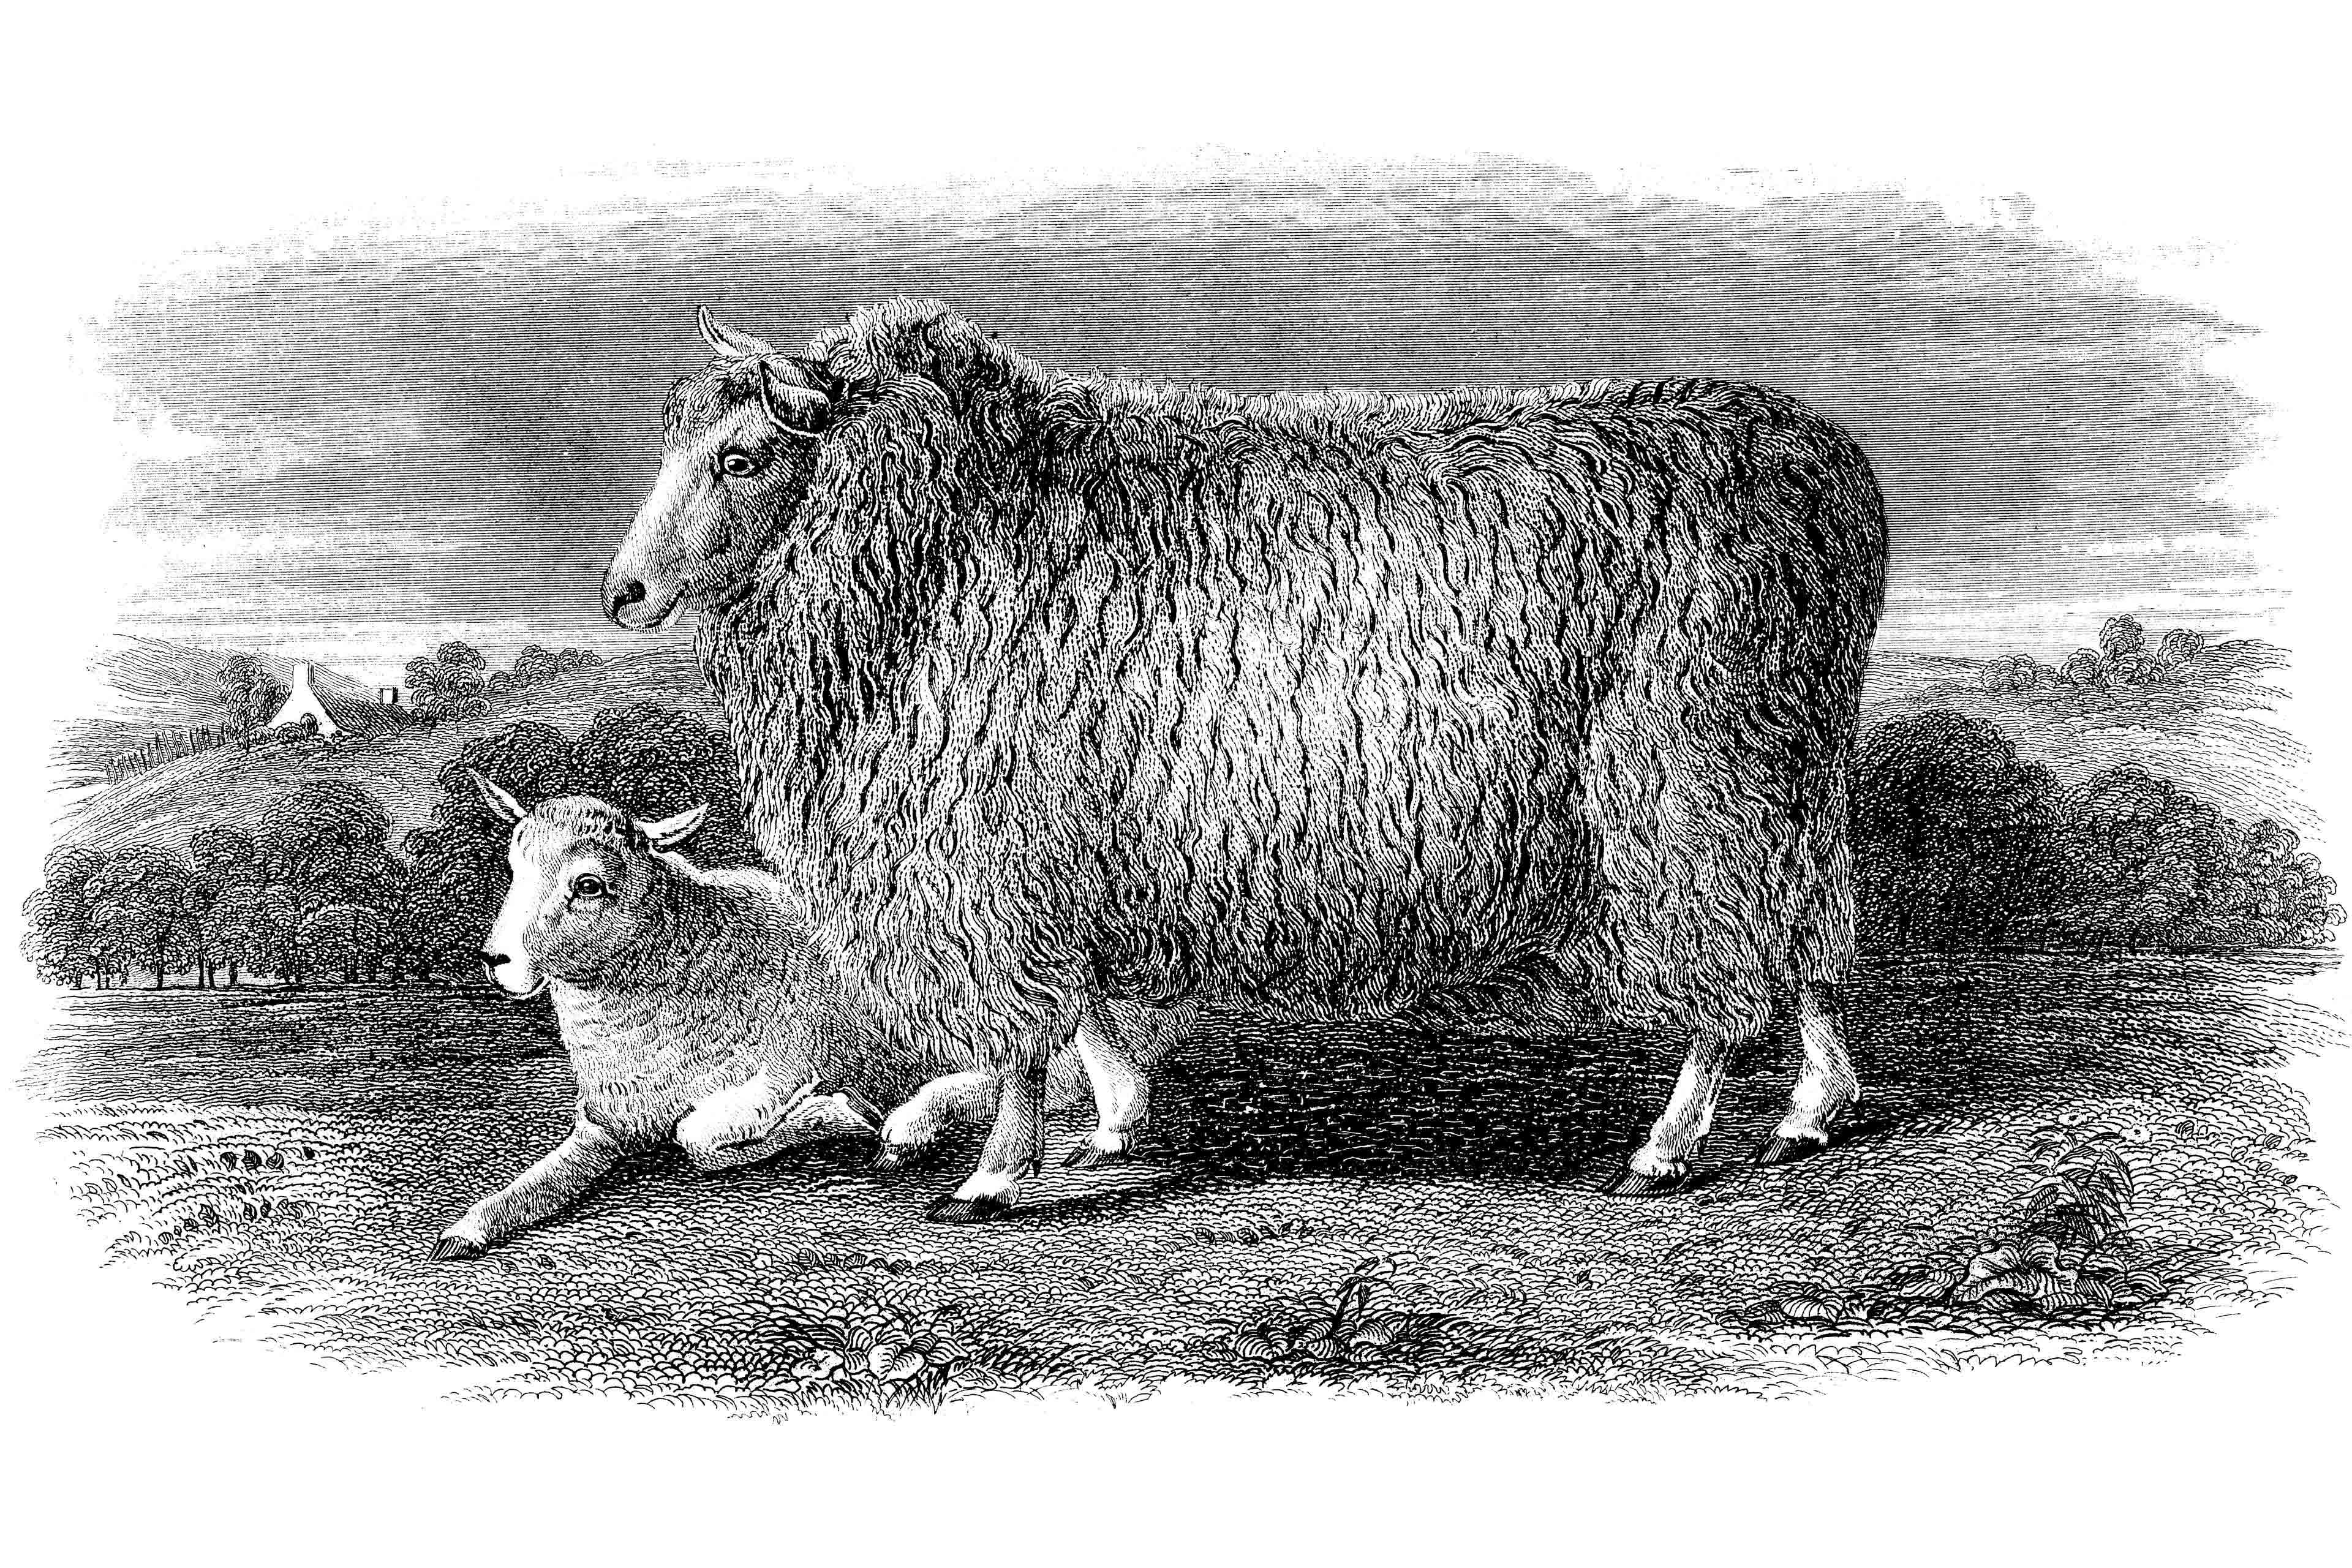 19th Century book illustration, taken from 9th edition (1875) of Encyclopaedia Britannica, of Romney Marsh sheep